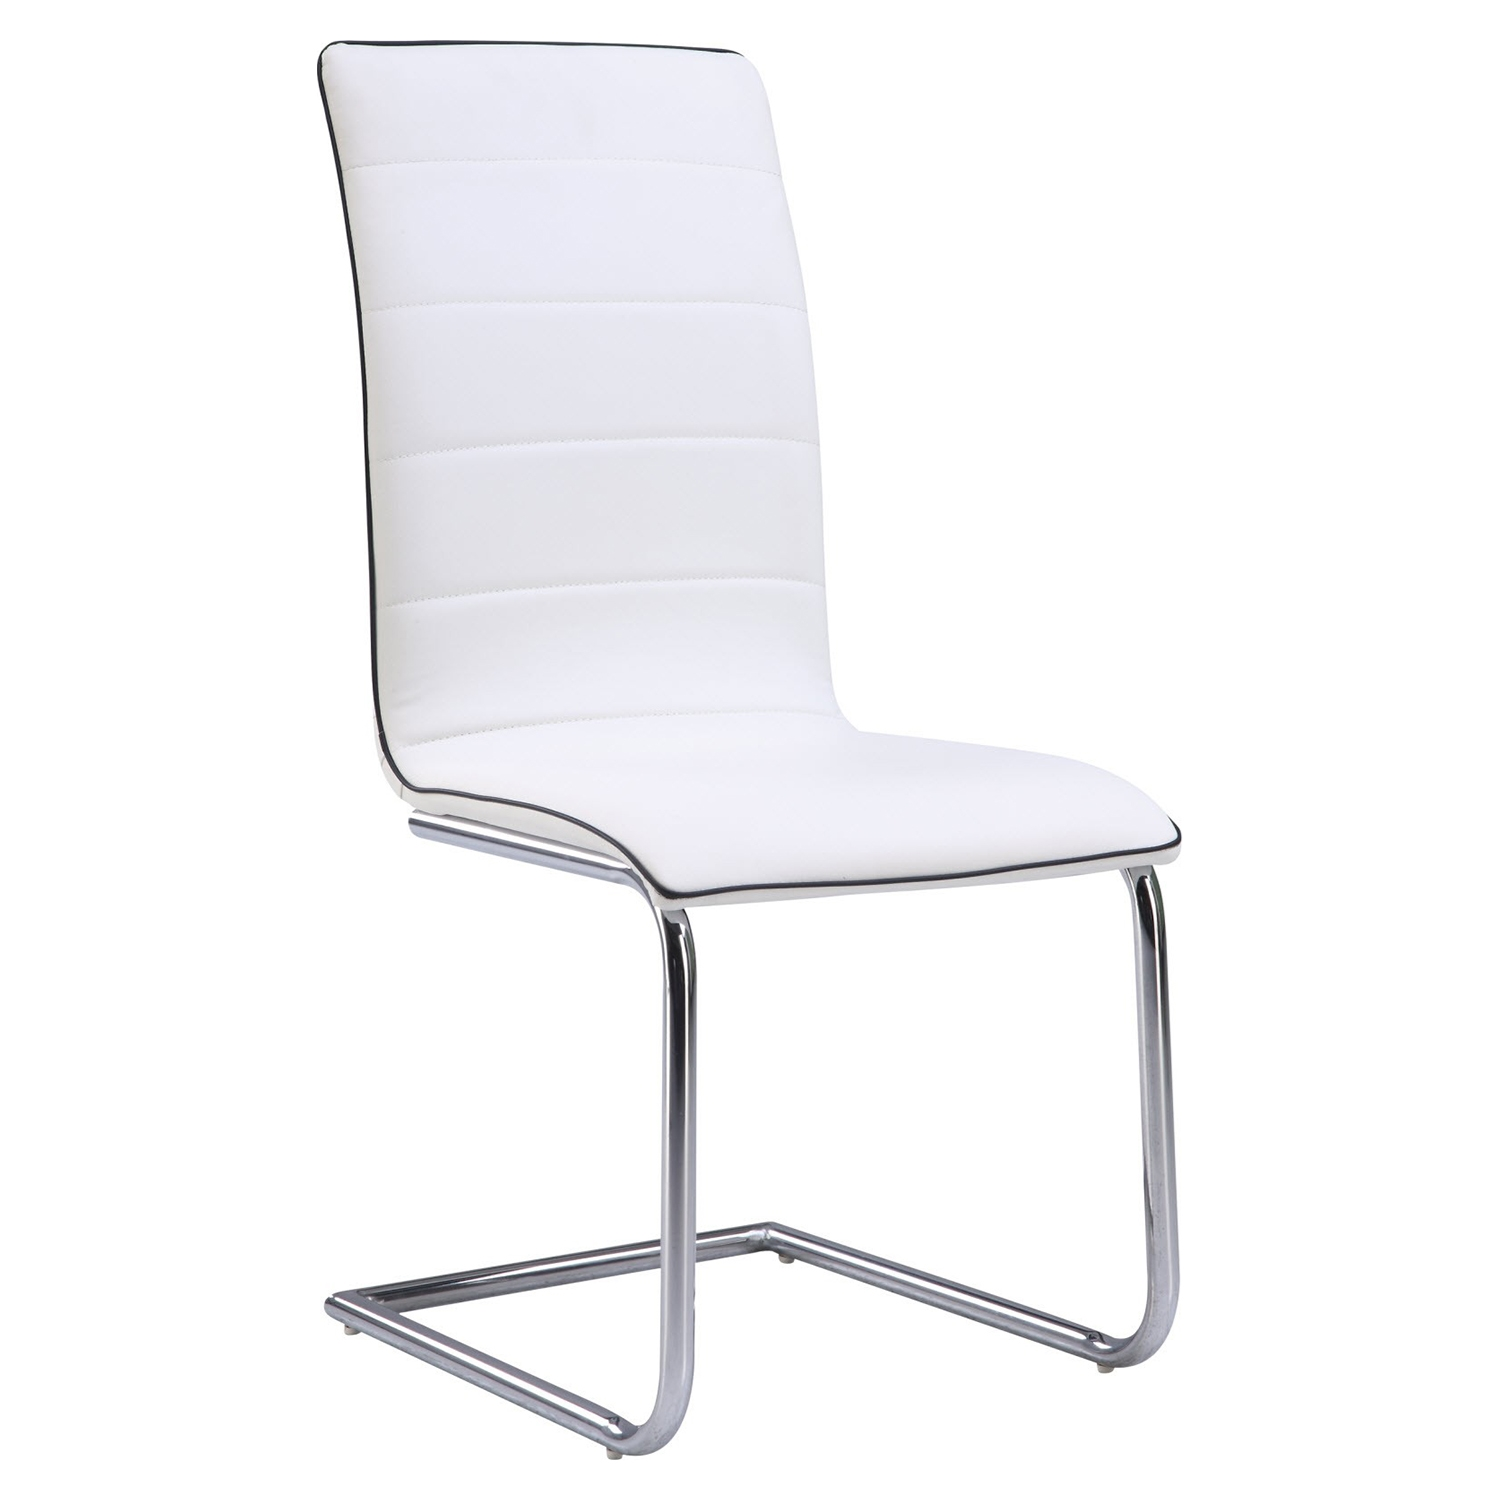 Dining Side Chair - White Upholstery, Chrome Legs